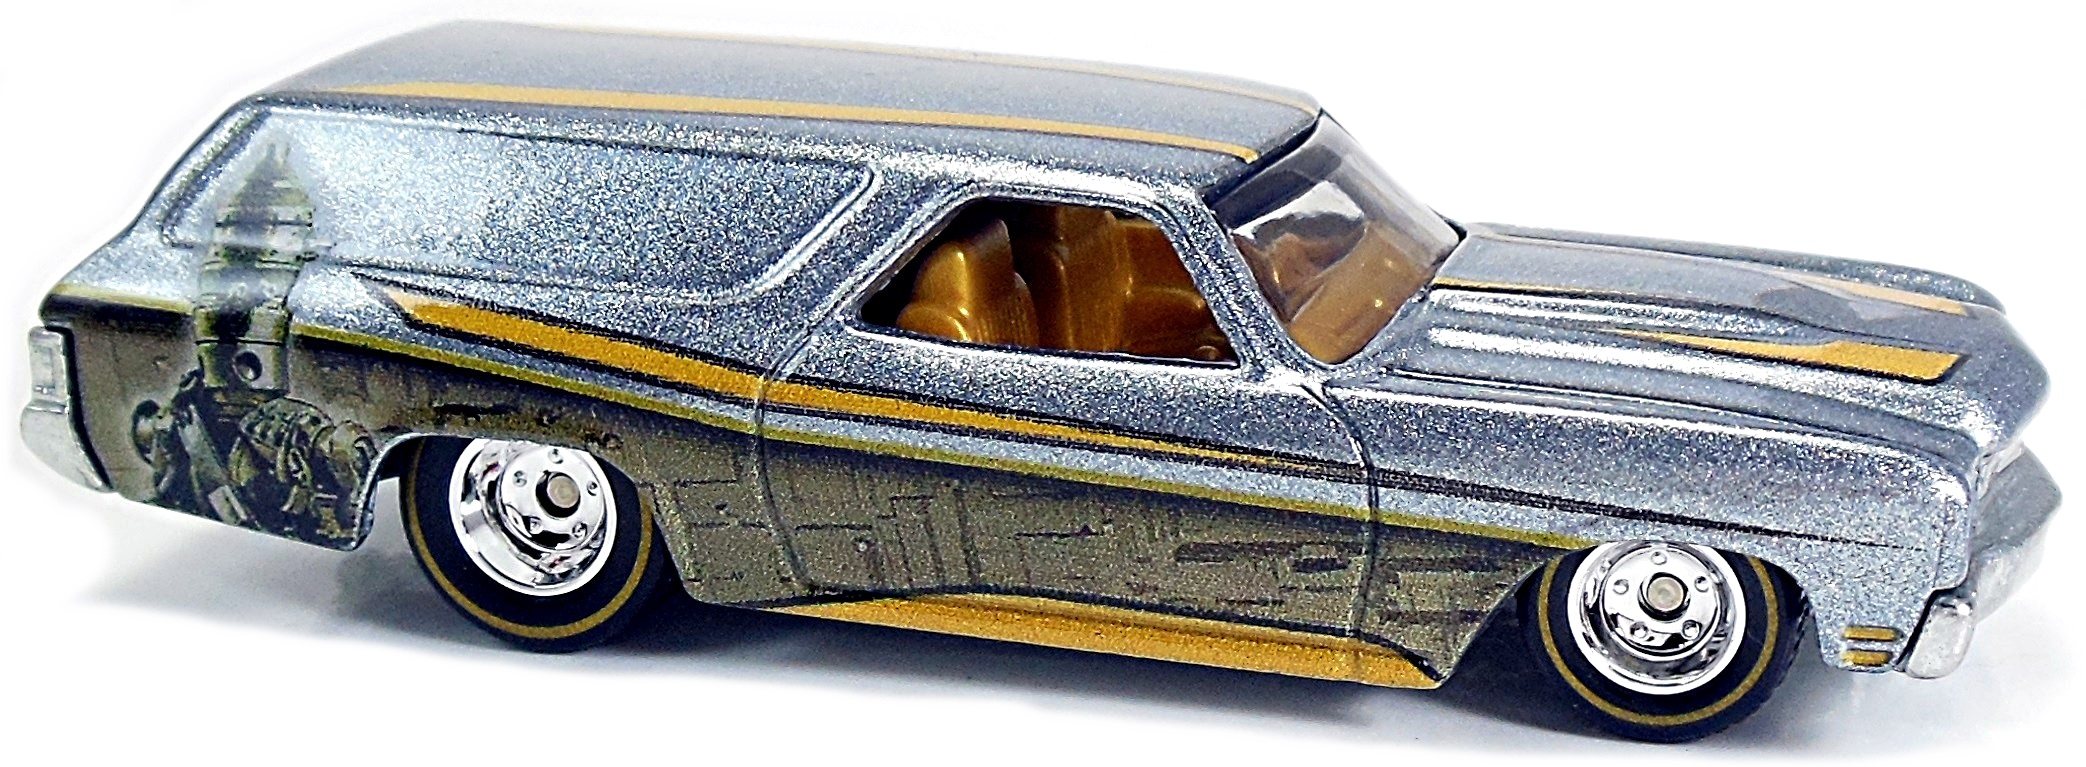 2016 Hot Wheels Pop Culture Star Trek 50th /'70 Chevelle Delivery